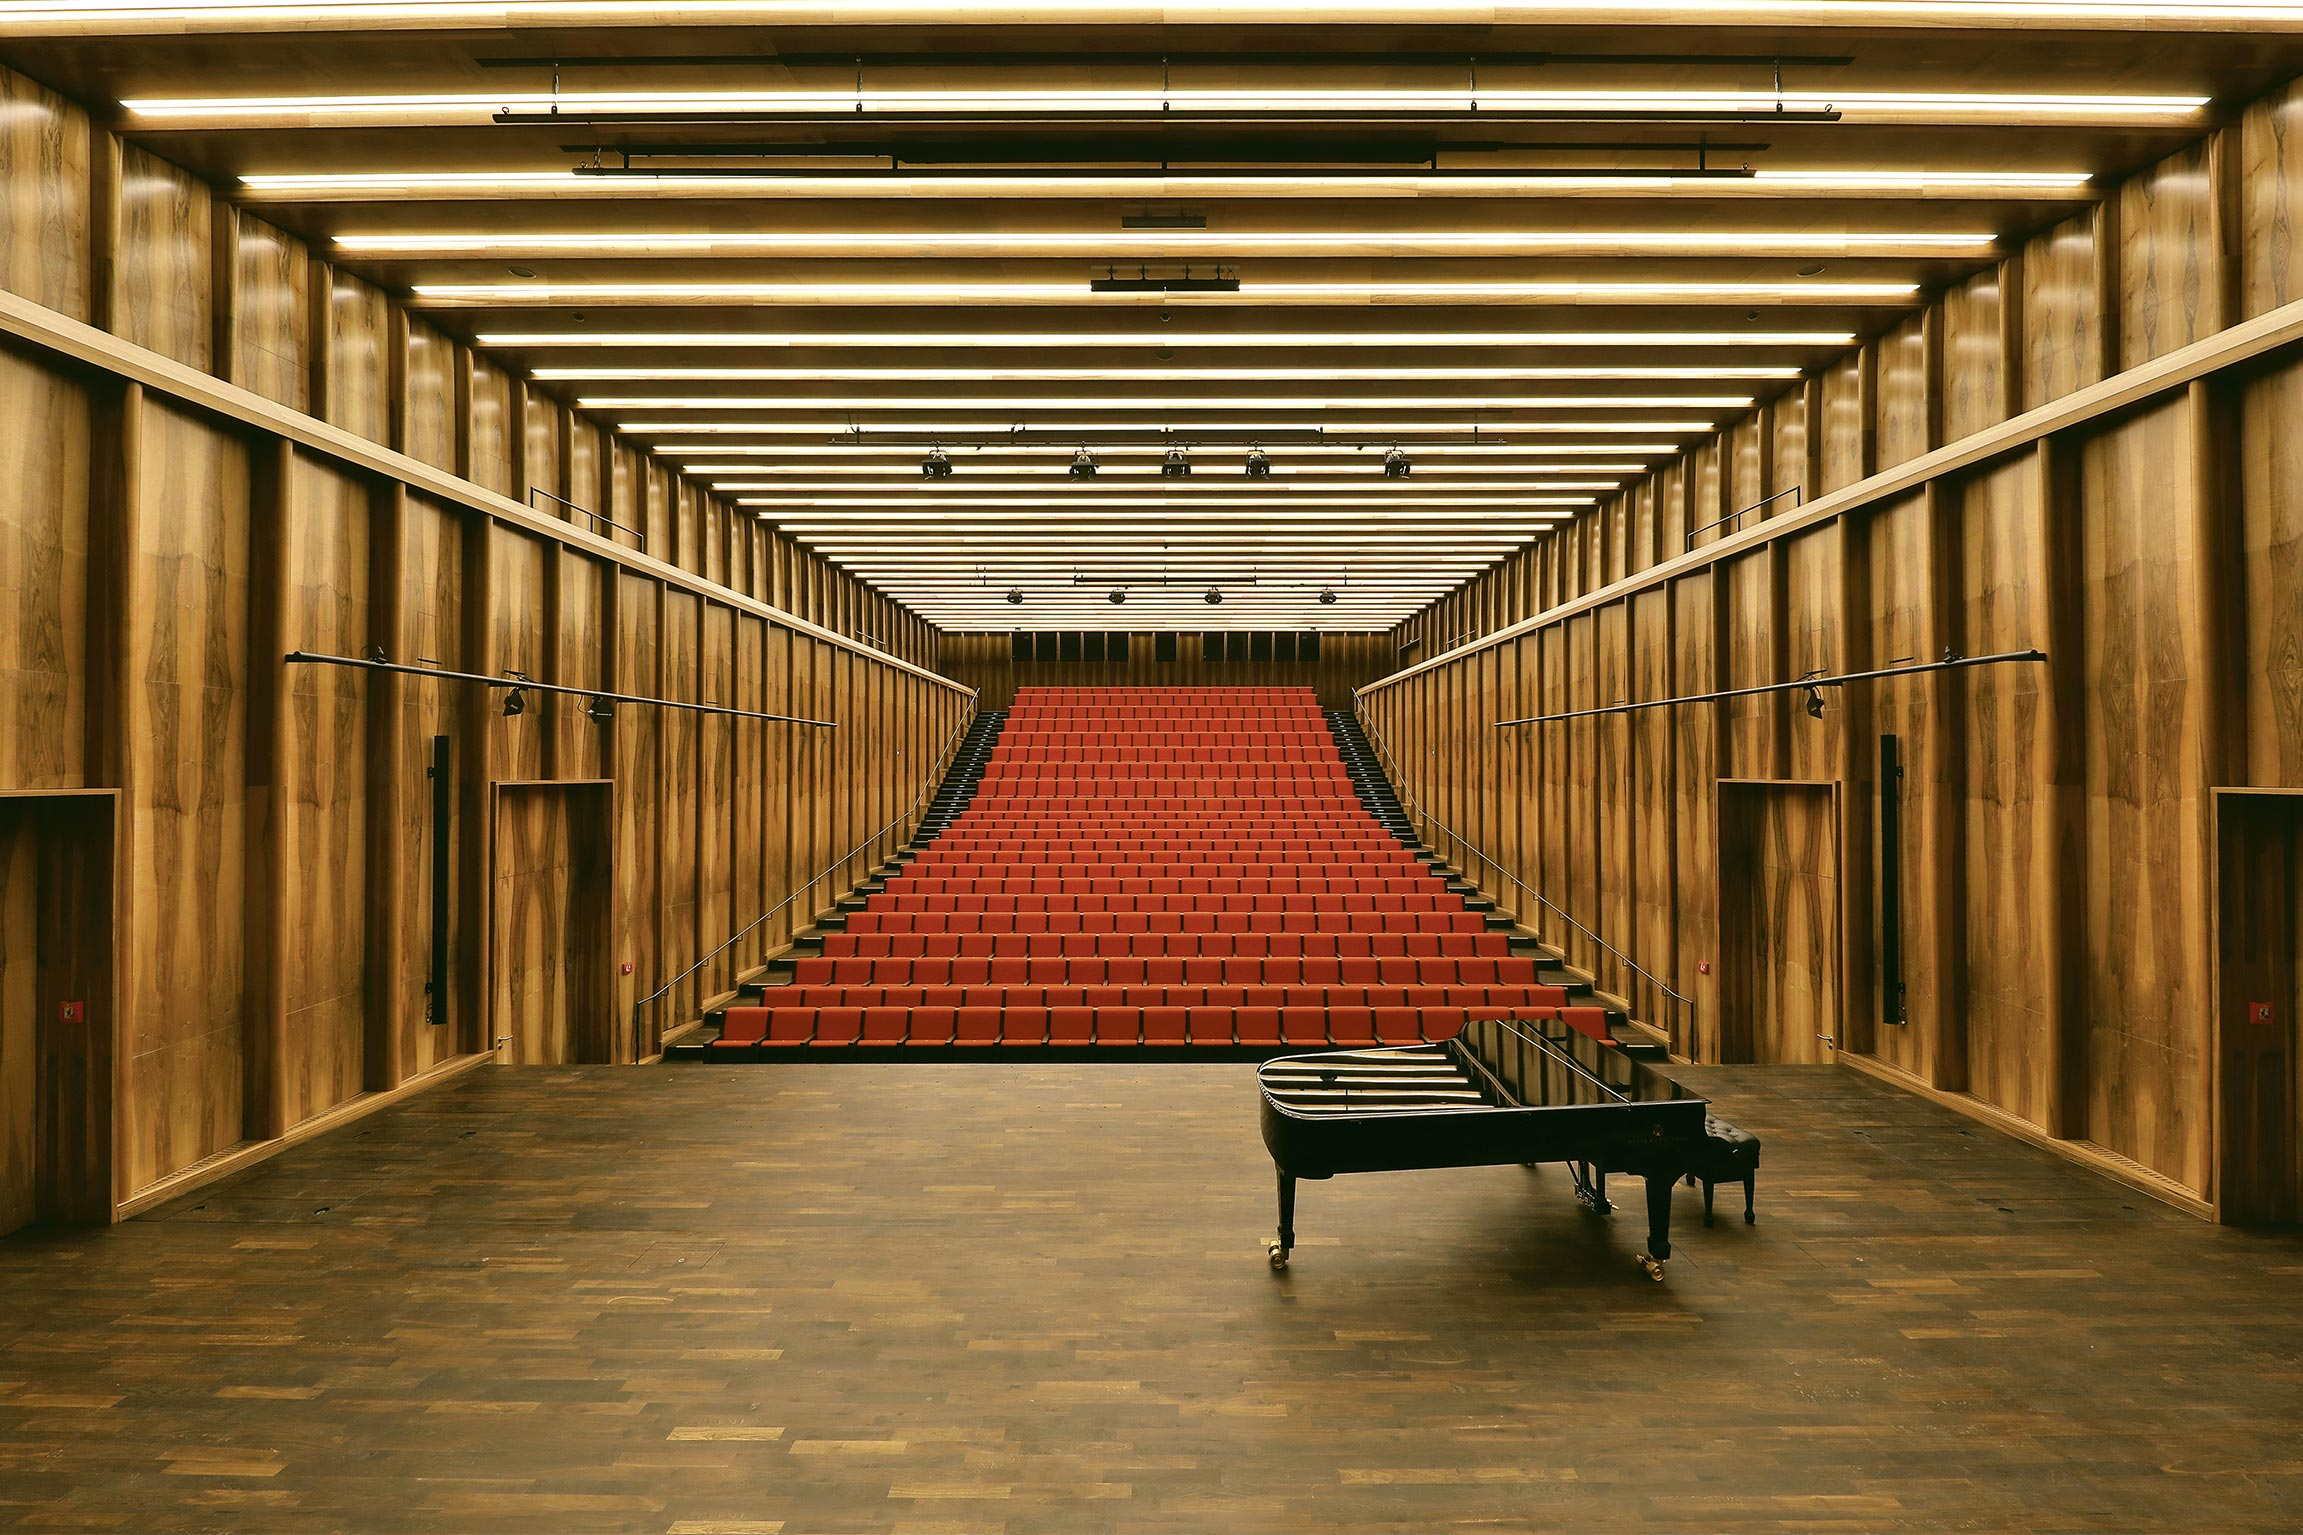 The jewel in the crown of the new Carmen Würth Forum is the elegant Reinhold Würth Hall. The chamber music hall offers seats for 580 visitors and stands out thanks to its exquisite decor: the walls are clad with French walnut while the floors are made of oiled German smoked oak. The acoustics are excellent.